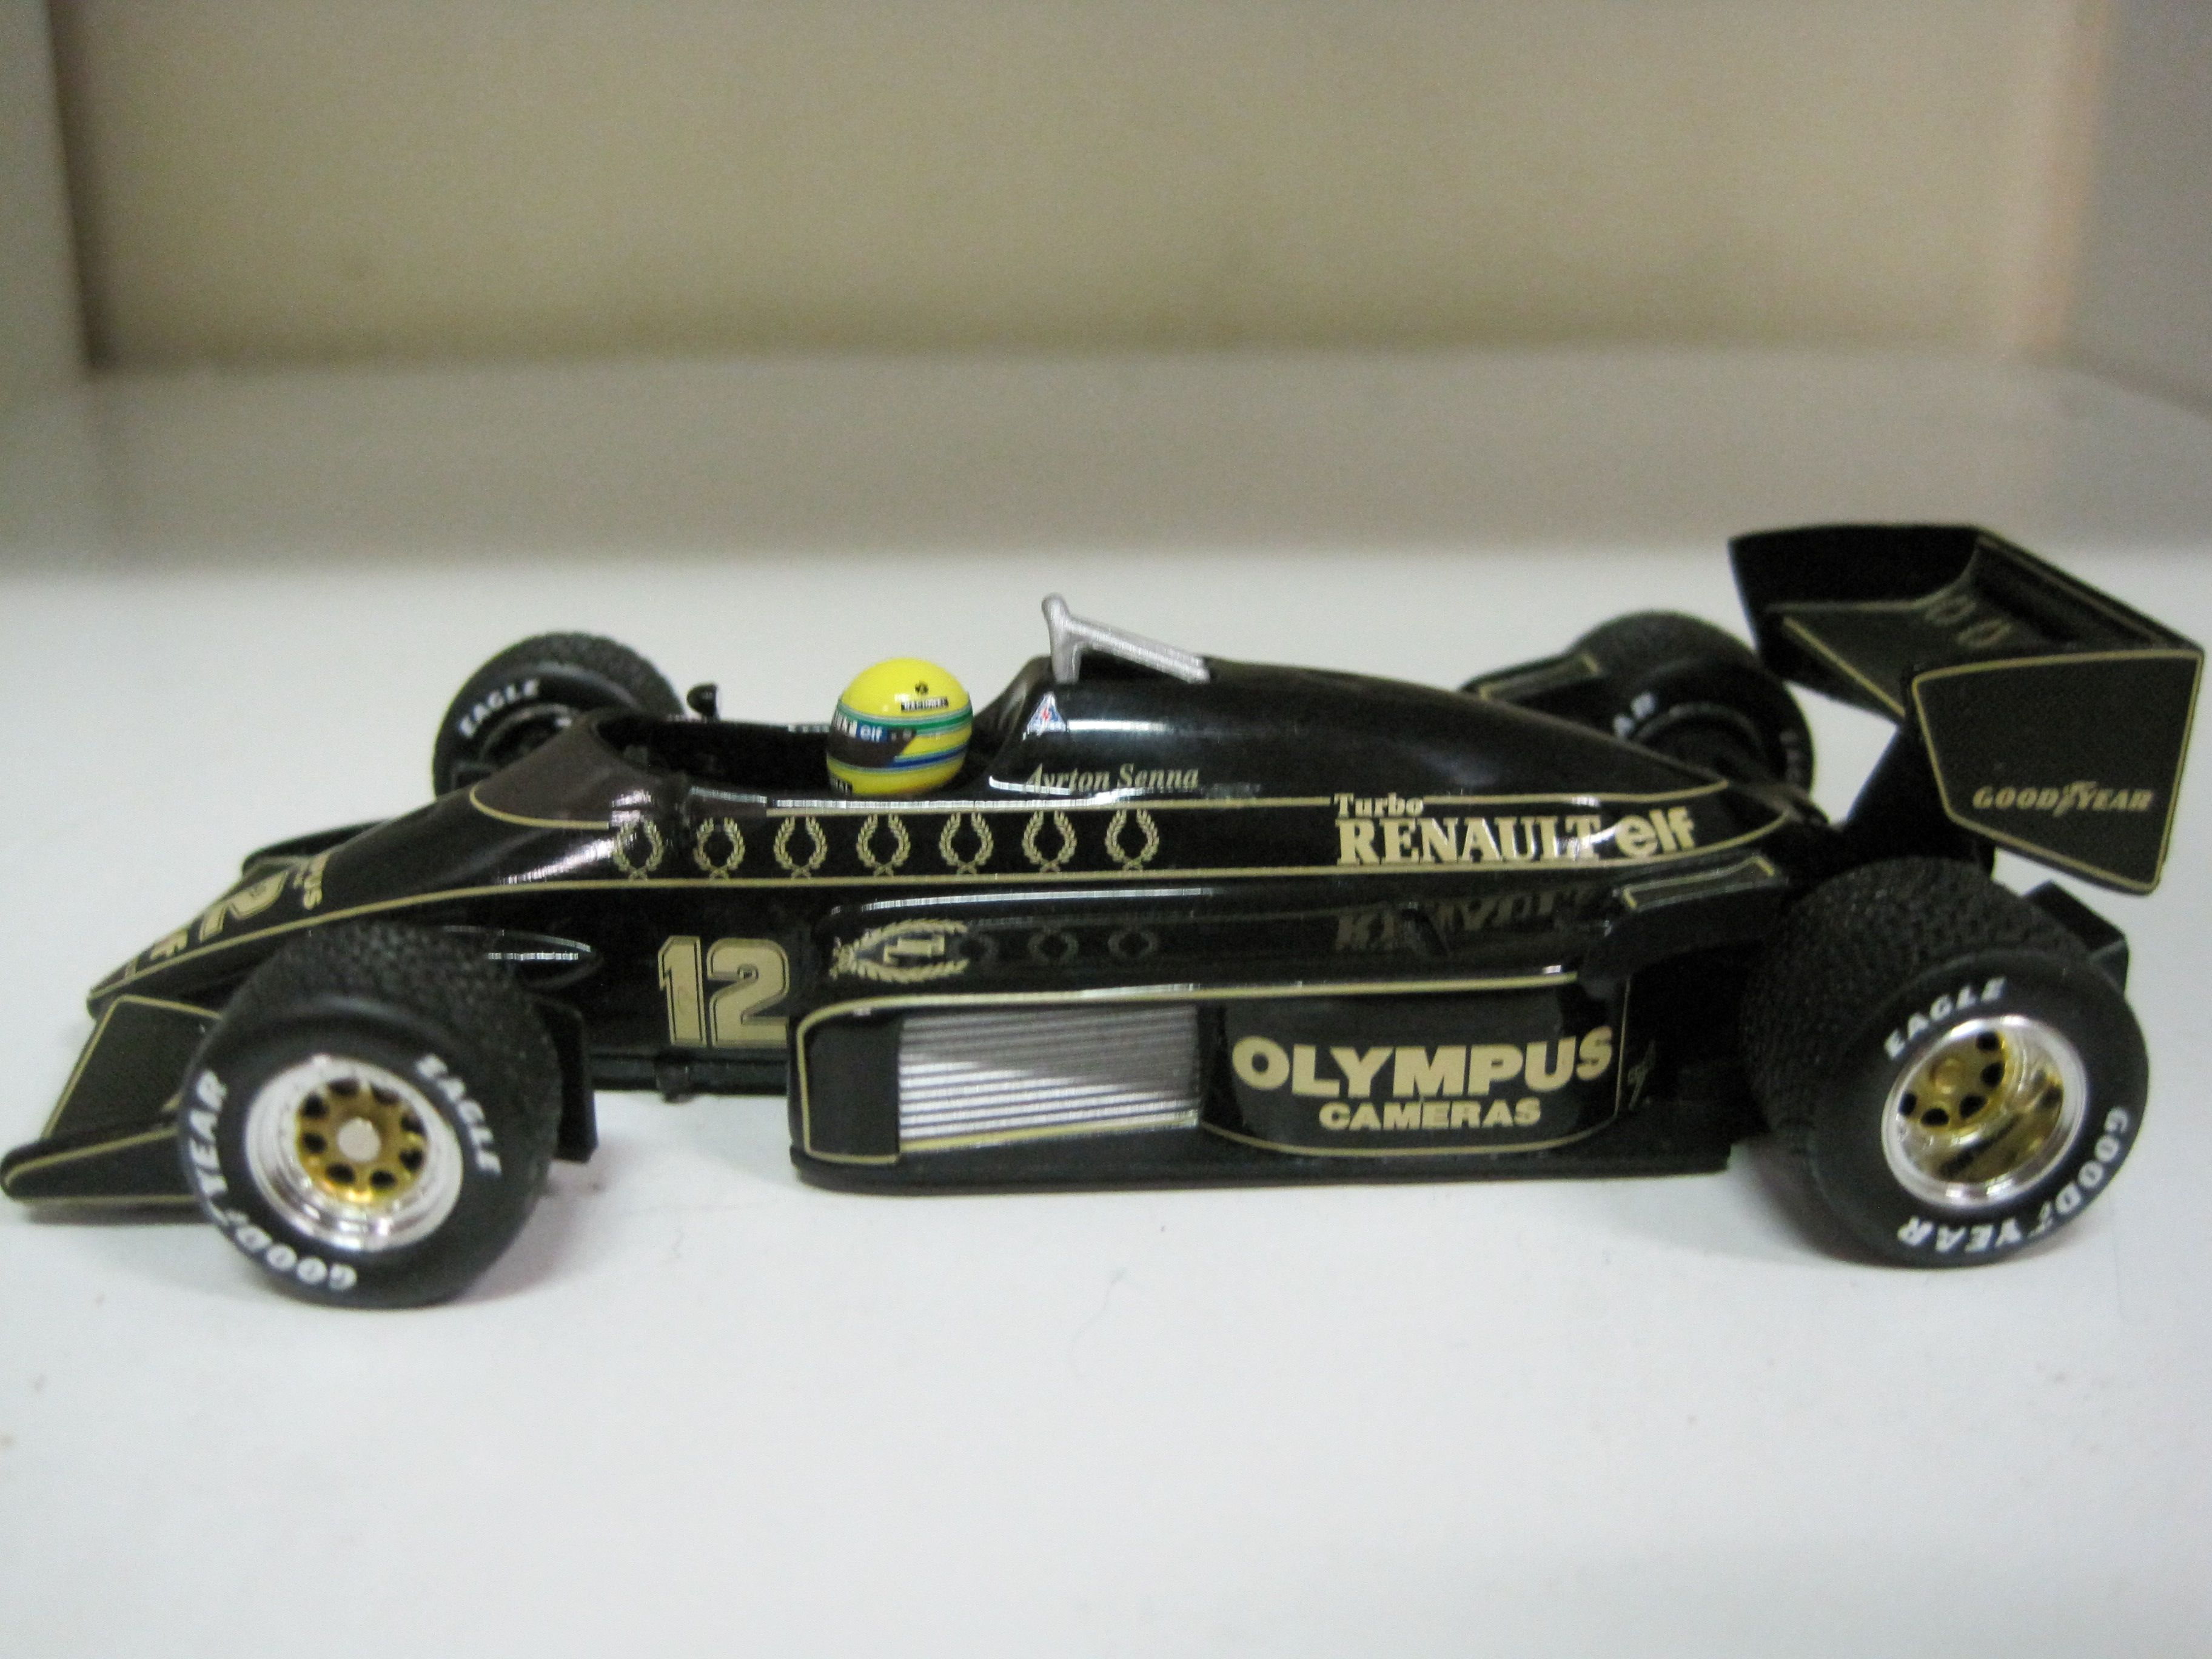 All my minichamps if you have any questions please feel free to ask